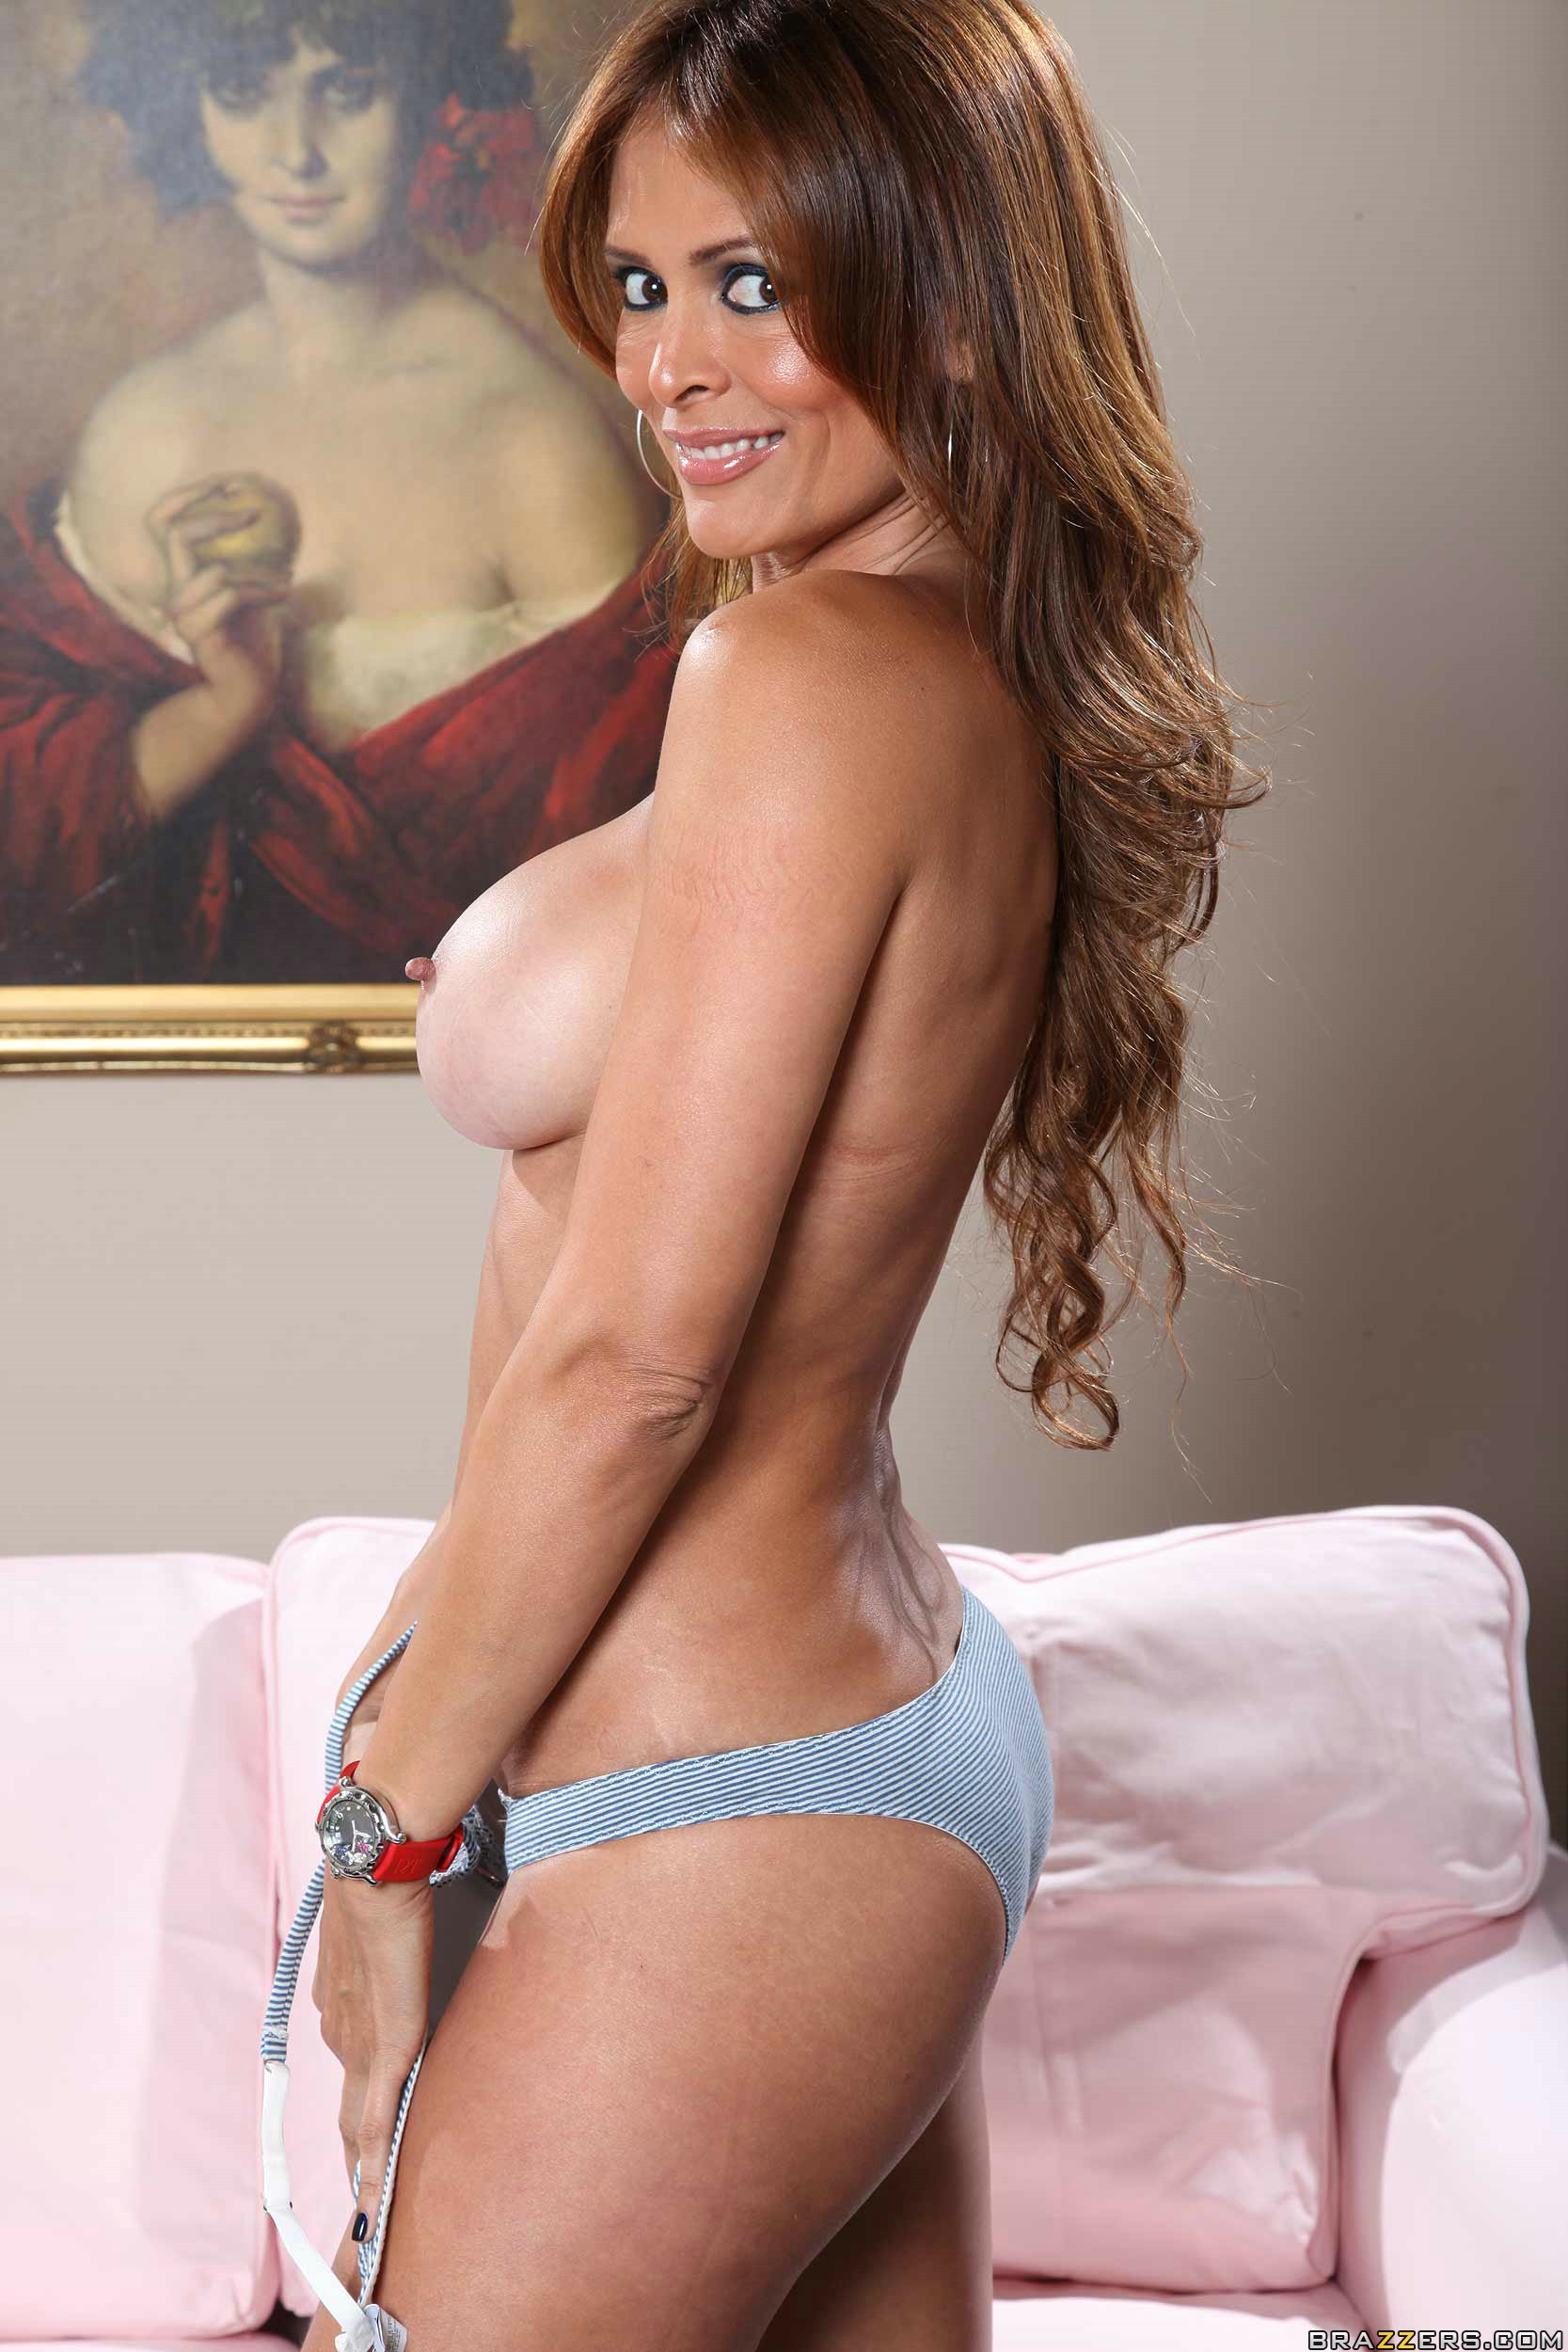 Here not Monique fuentes in thongs free pics you were